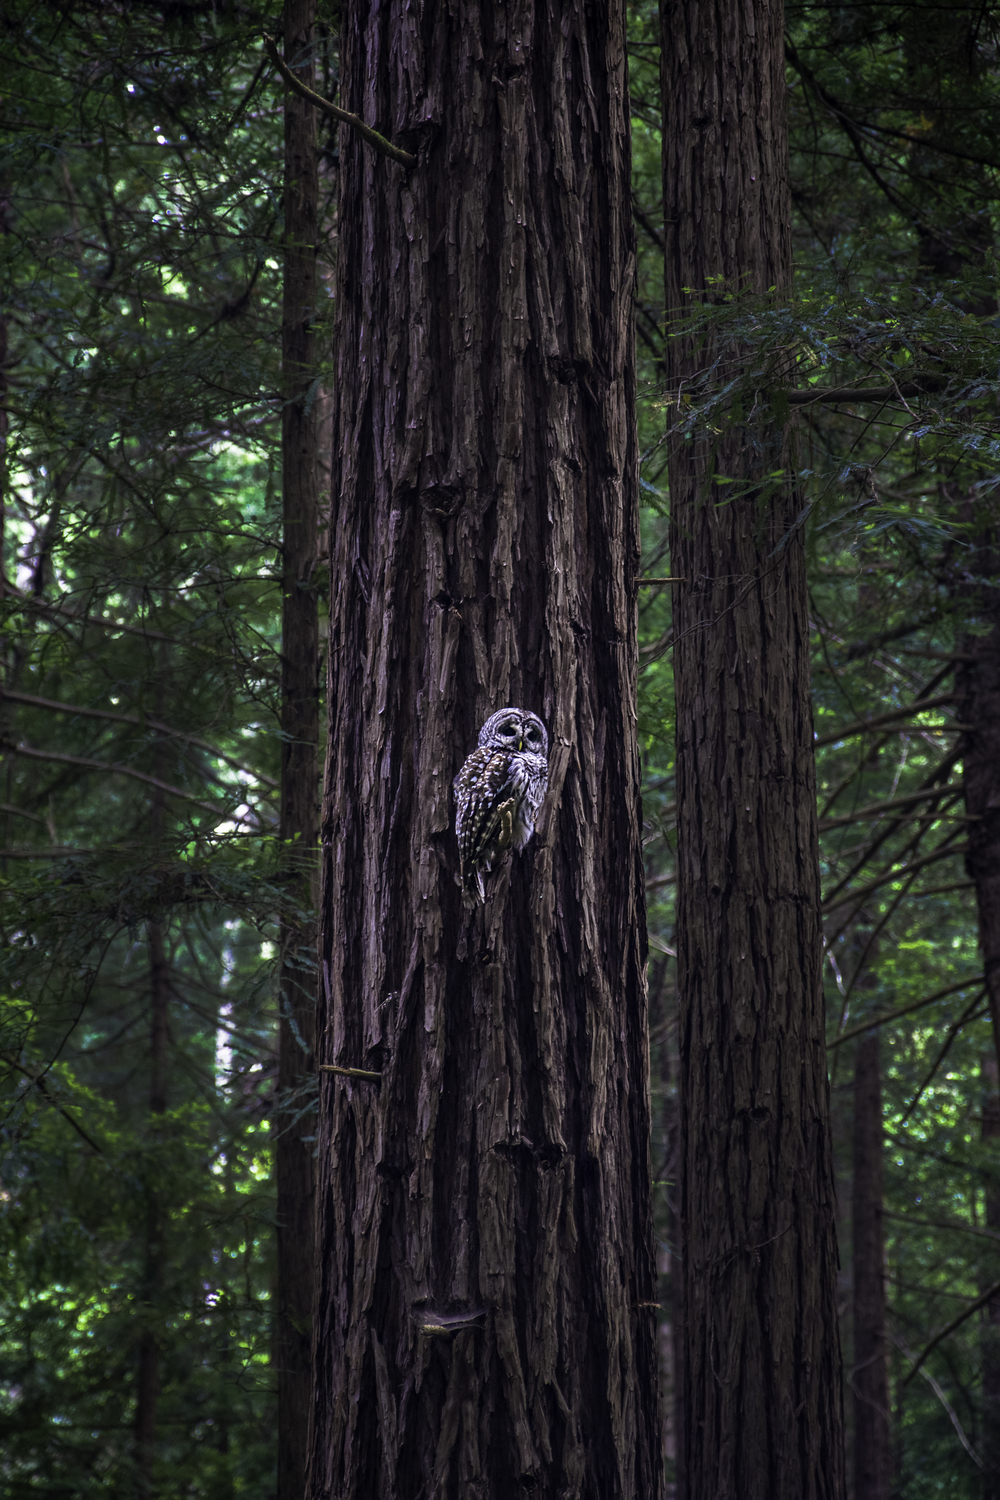 Owl in Muir Woods National Monument